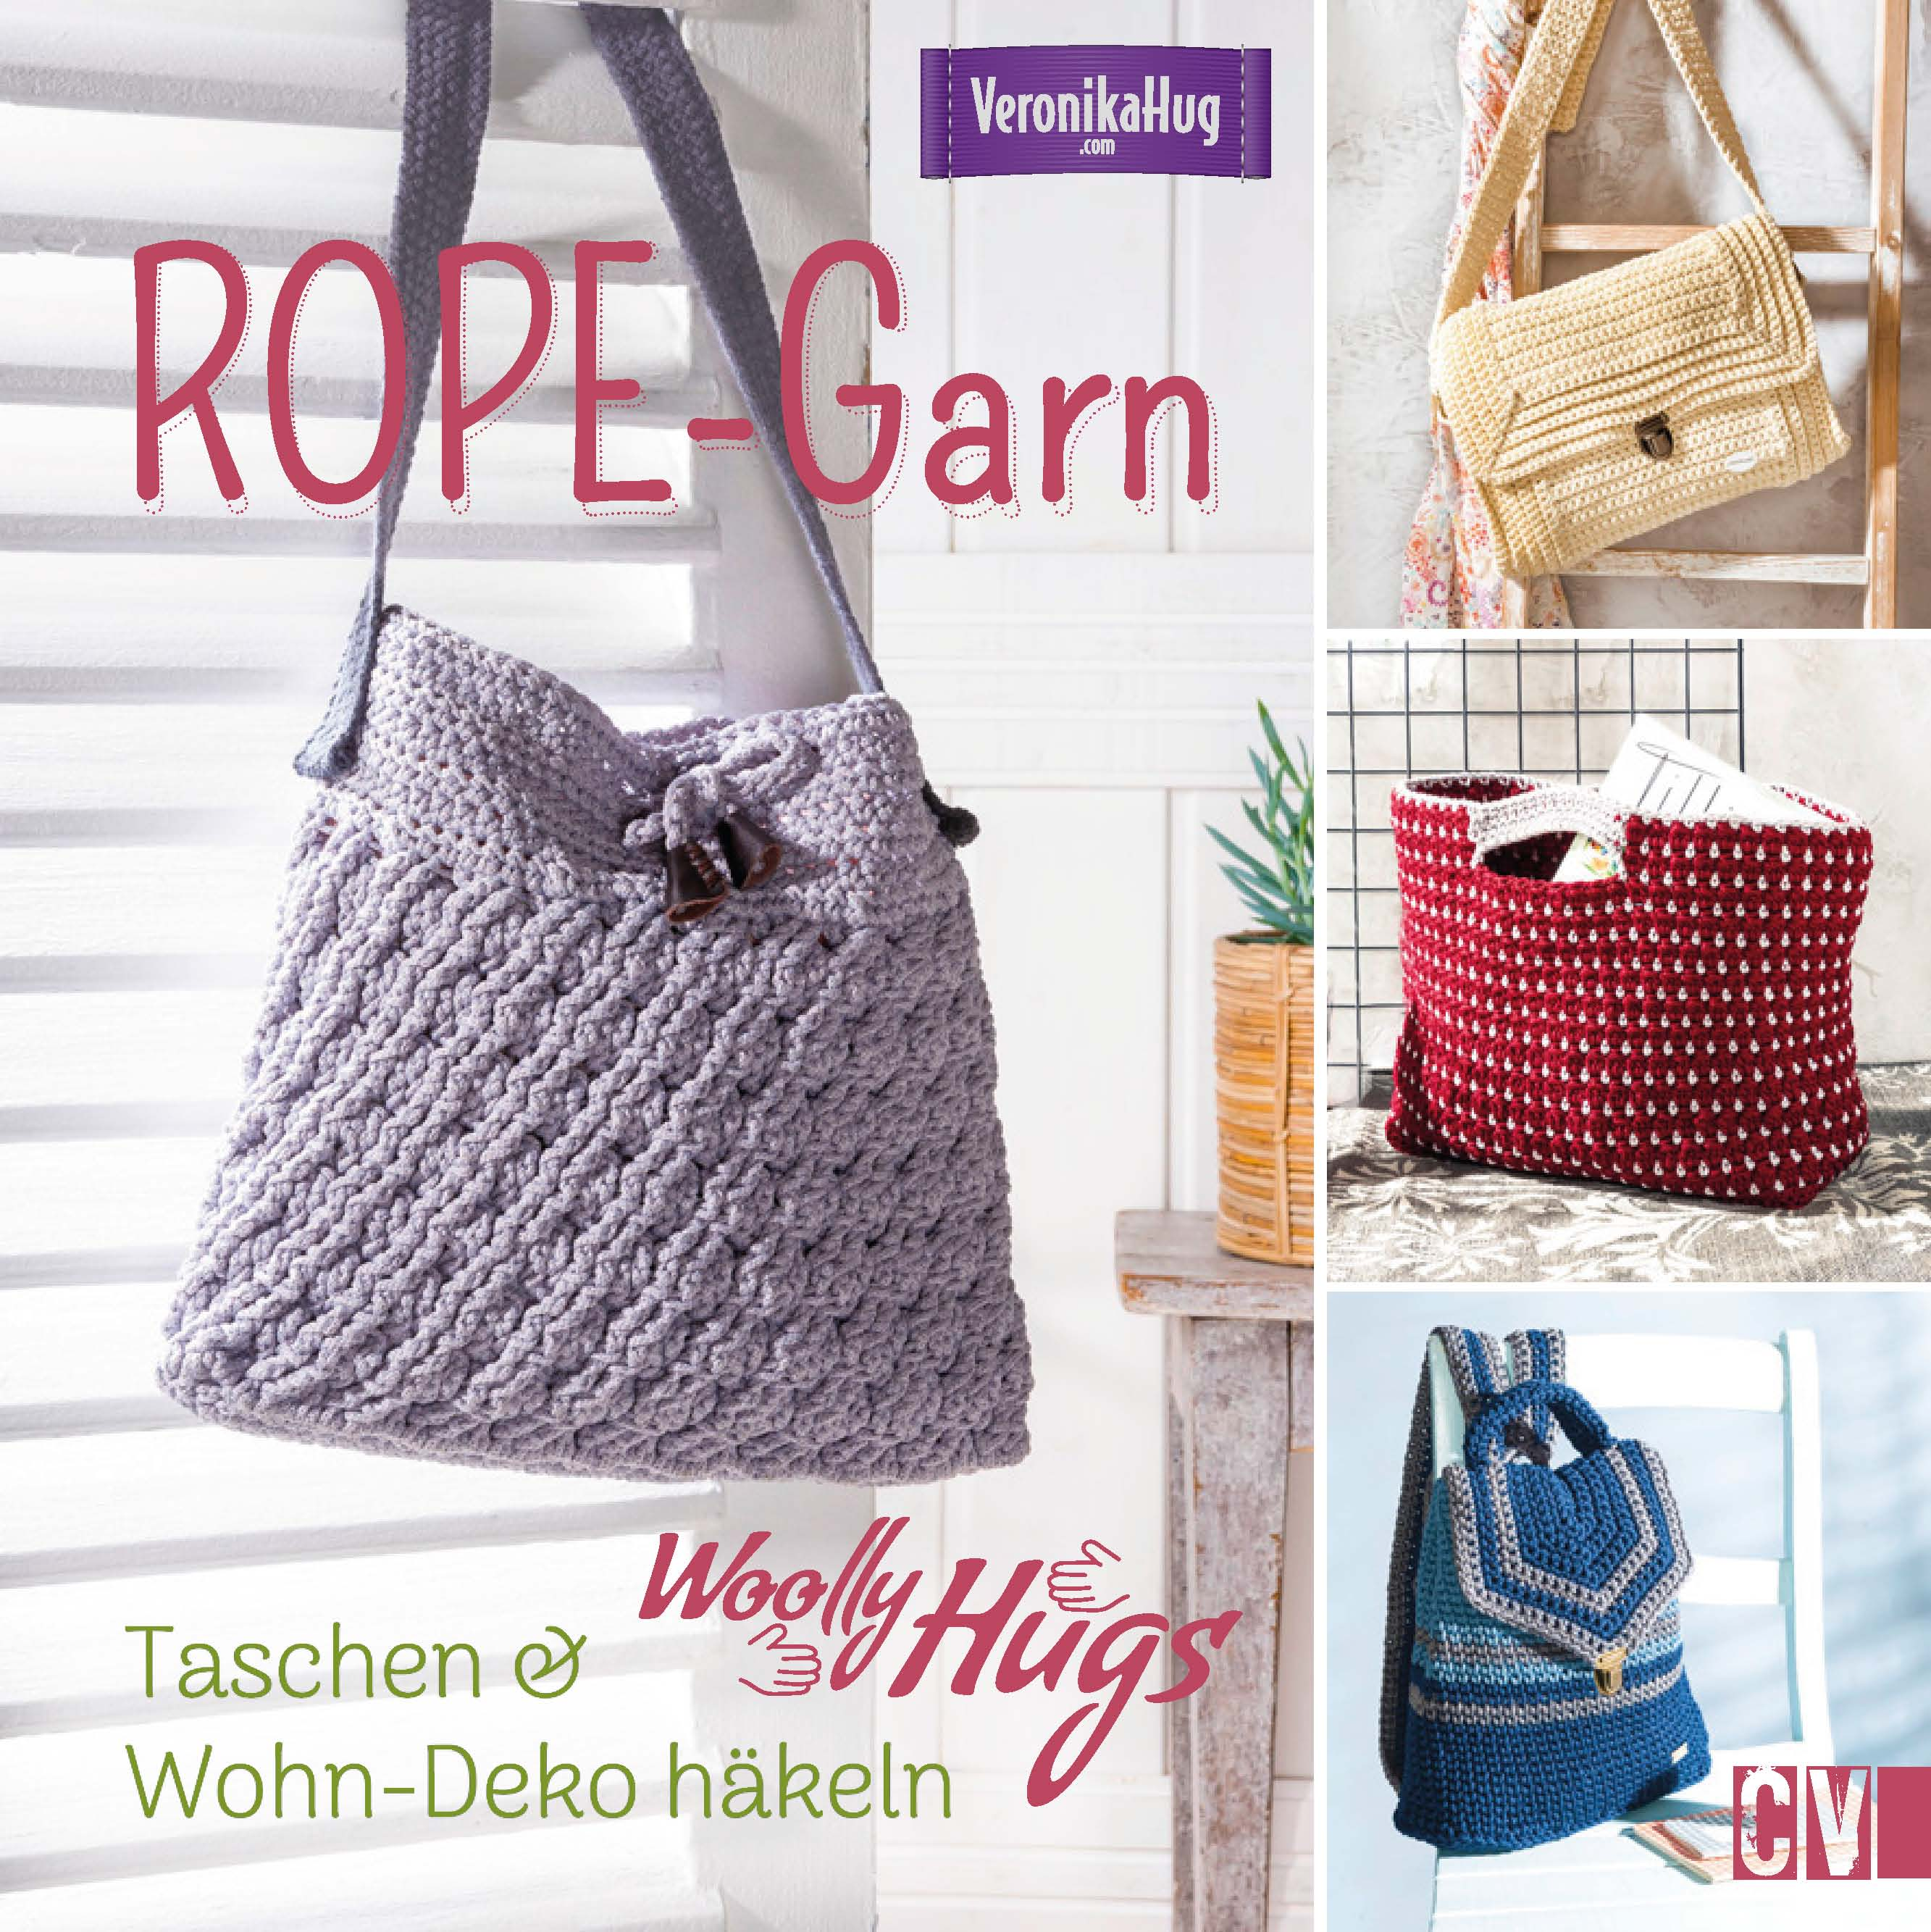 CV 6554 Woolly Hugs ROPE-Garn